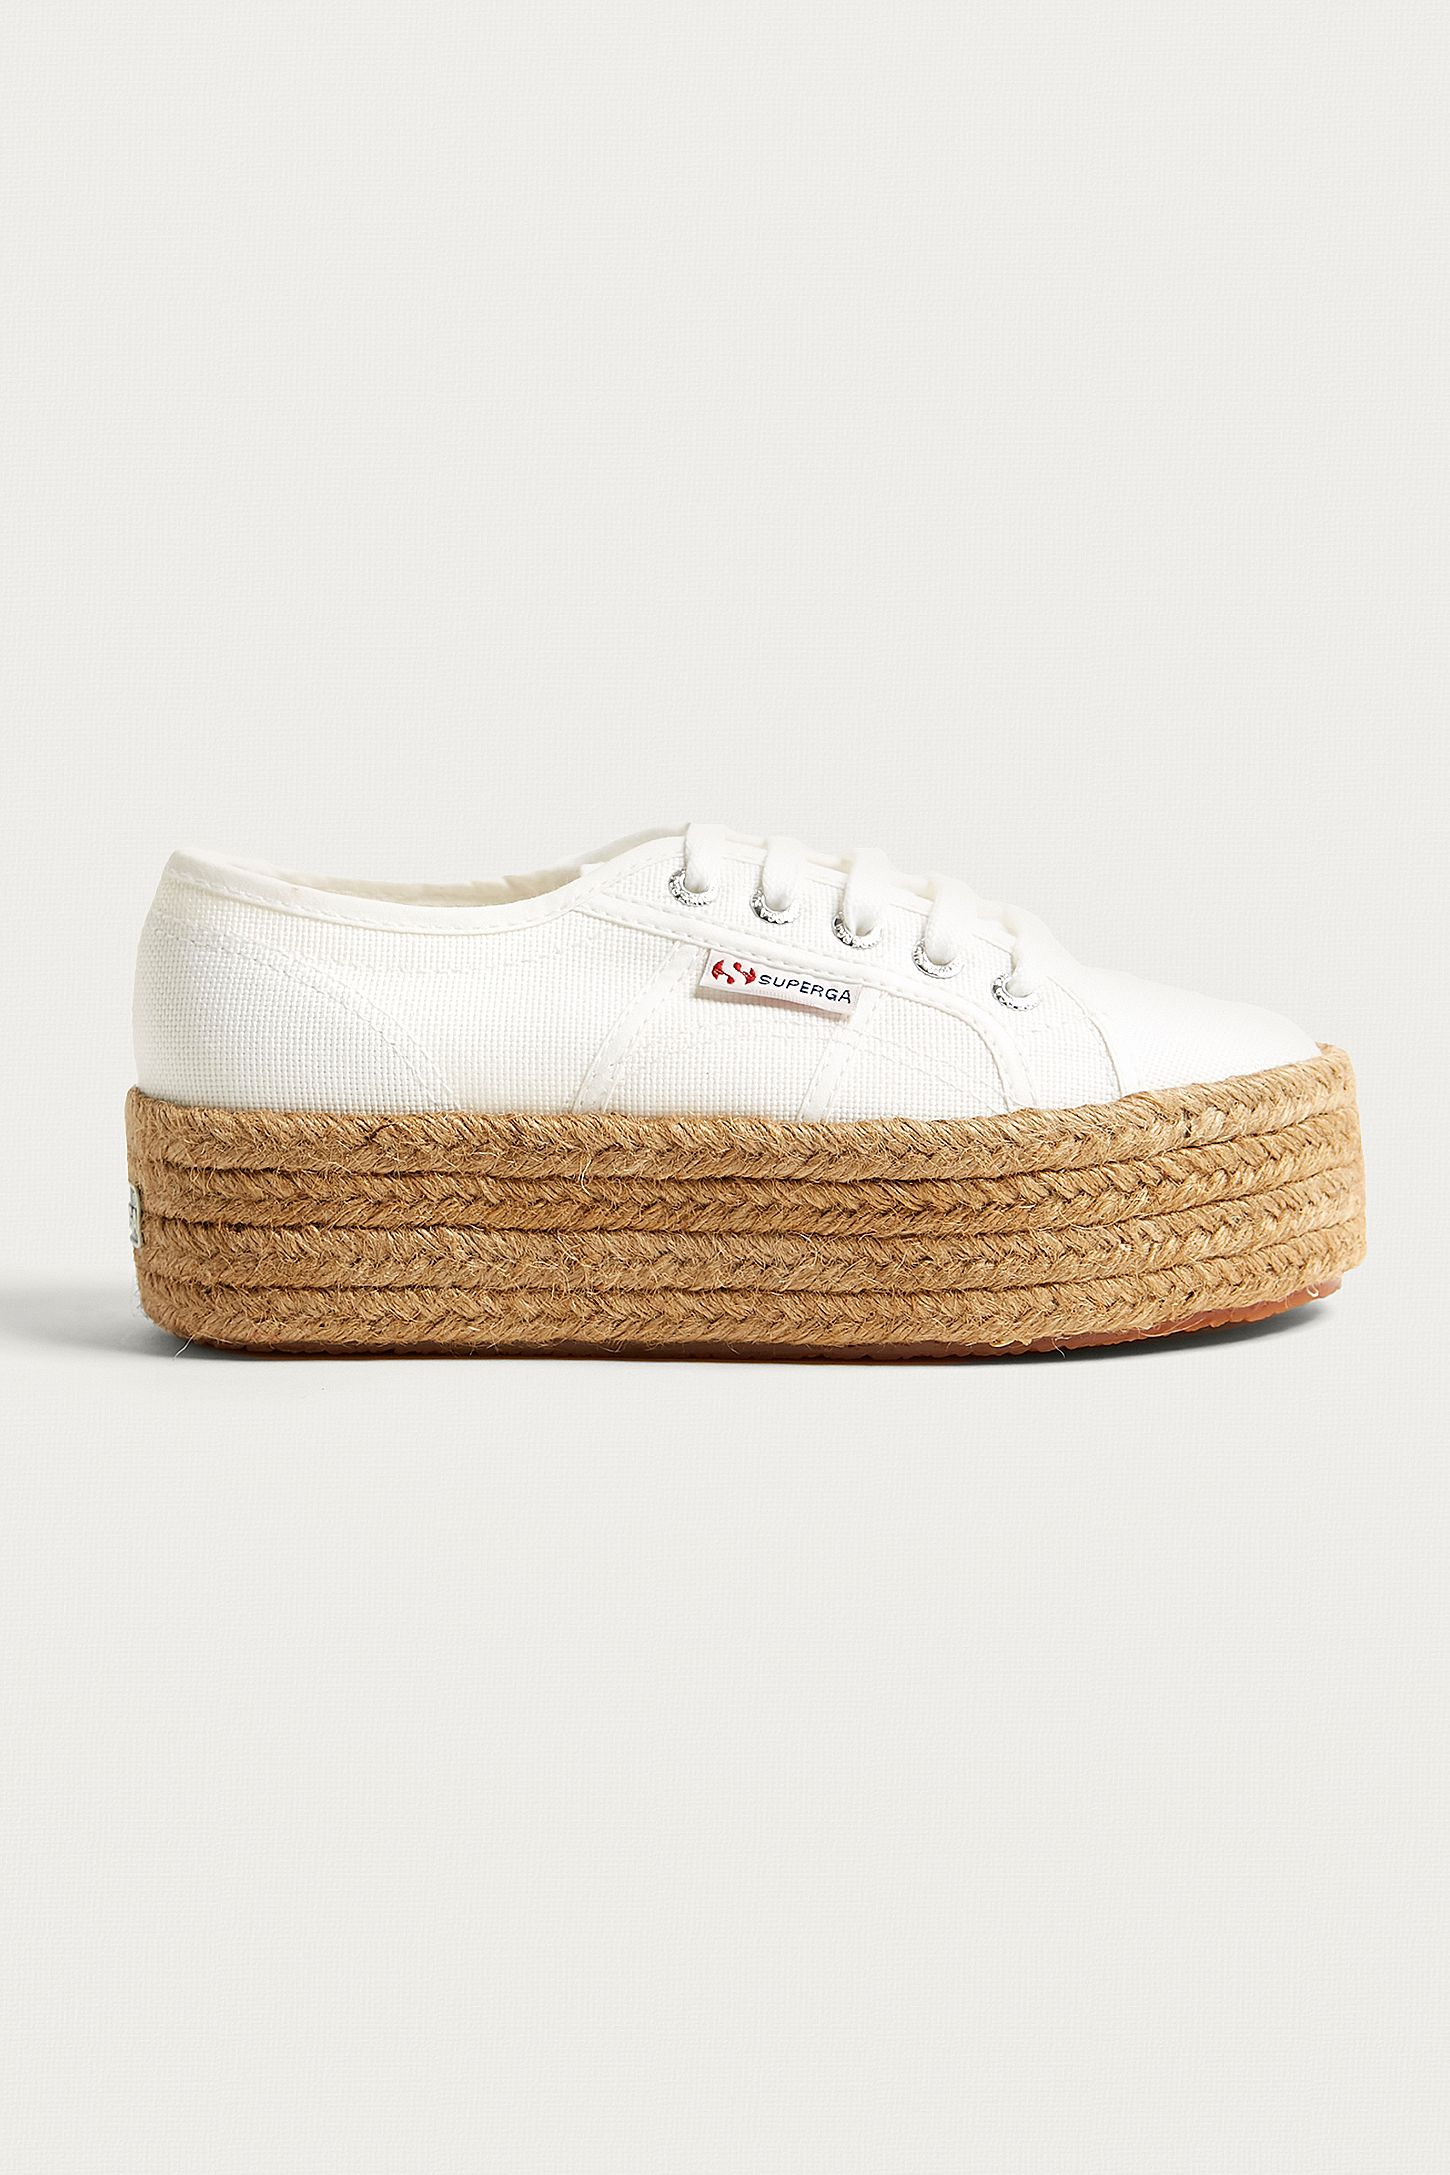 0277e4681a4c9 Superga 2790 Cotropew White Flatform Trainers. Click on image to zoom.  Hover to zoom. Double Tap to Zoom